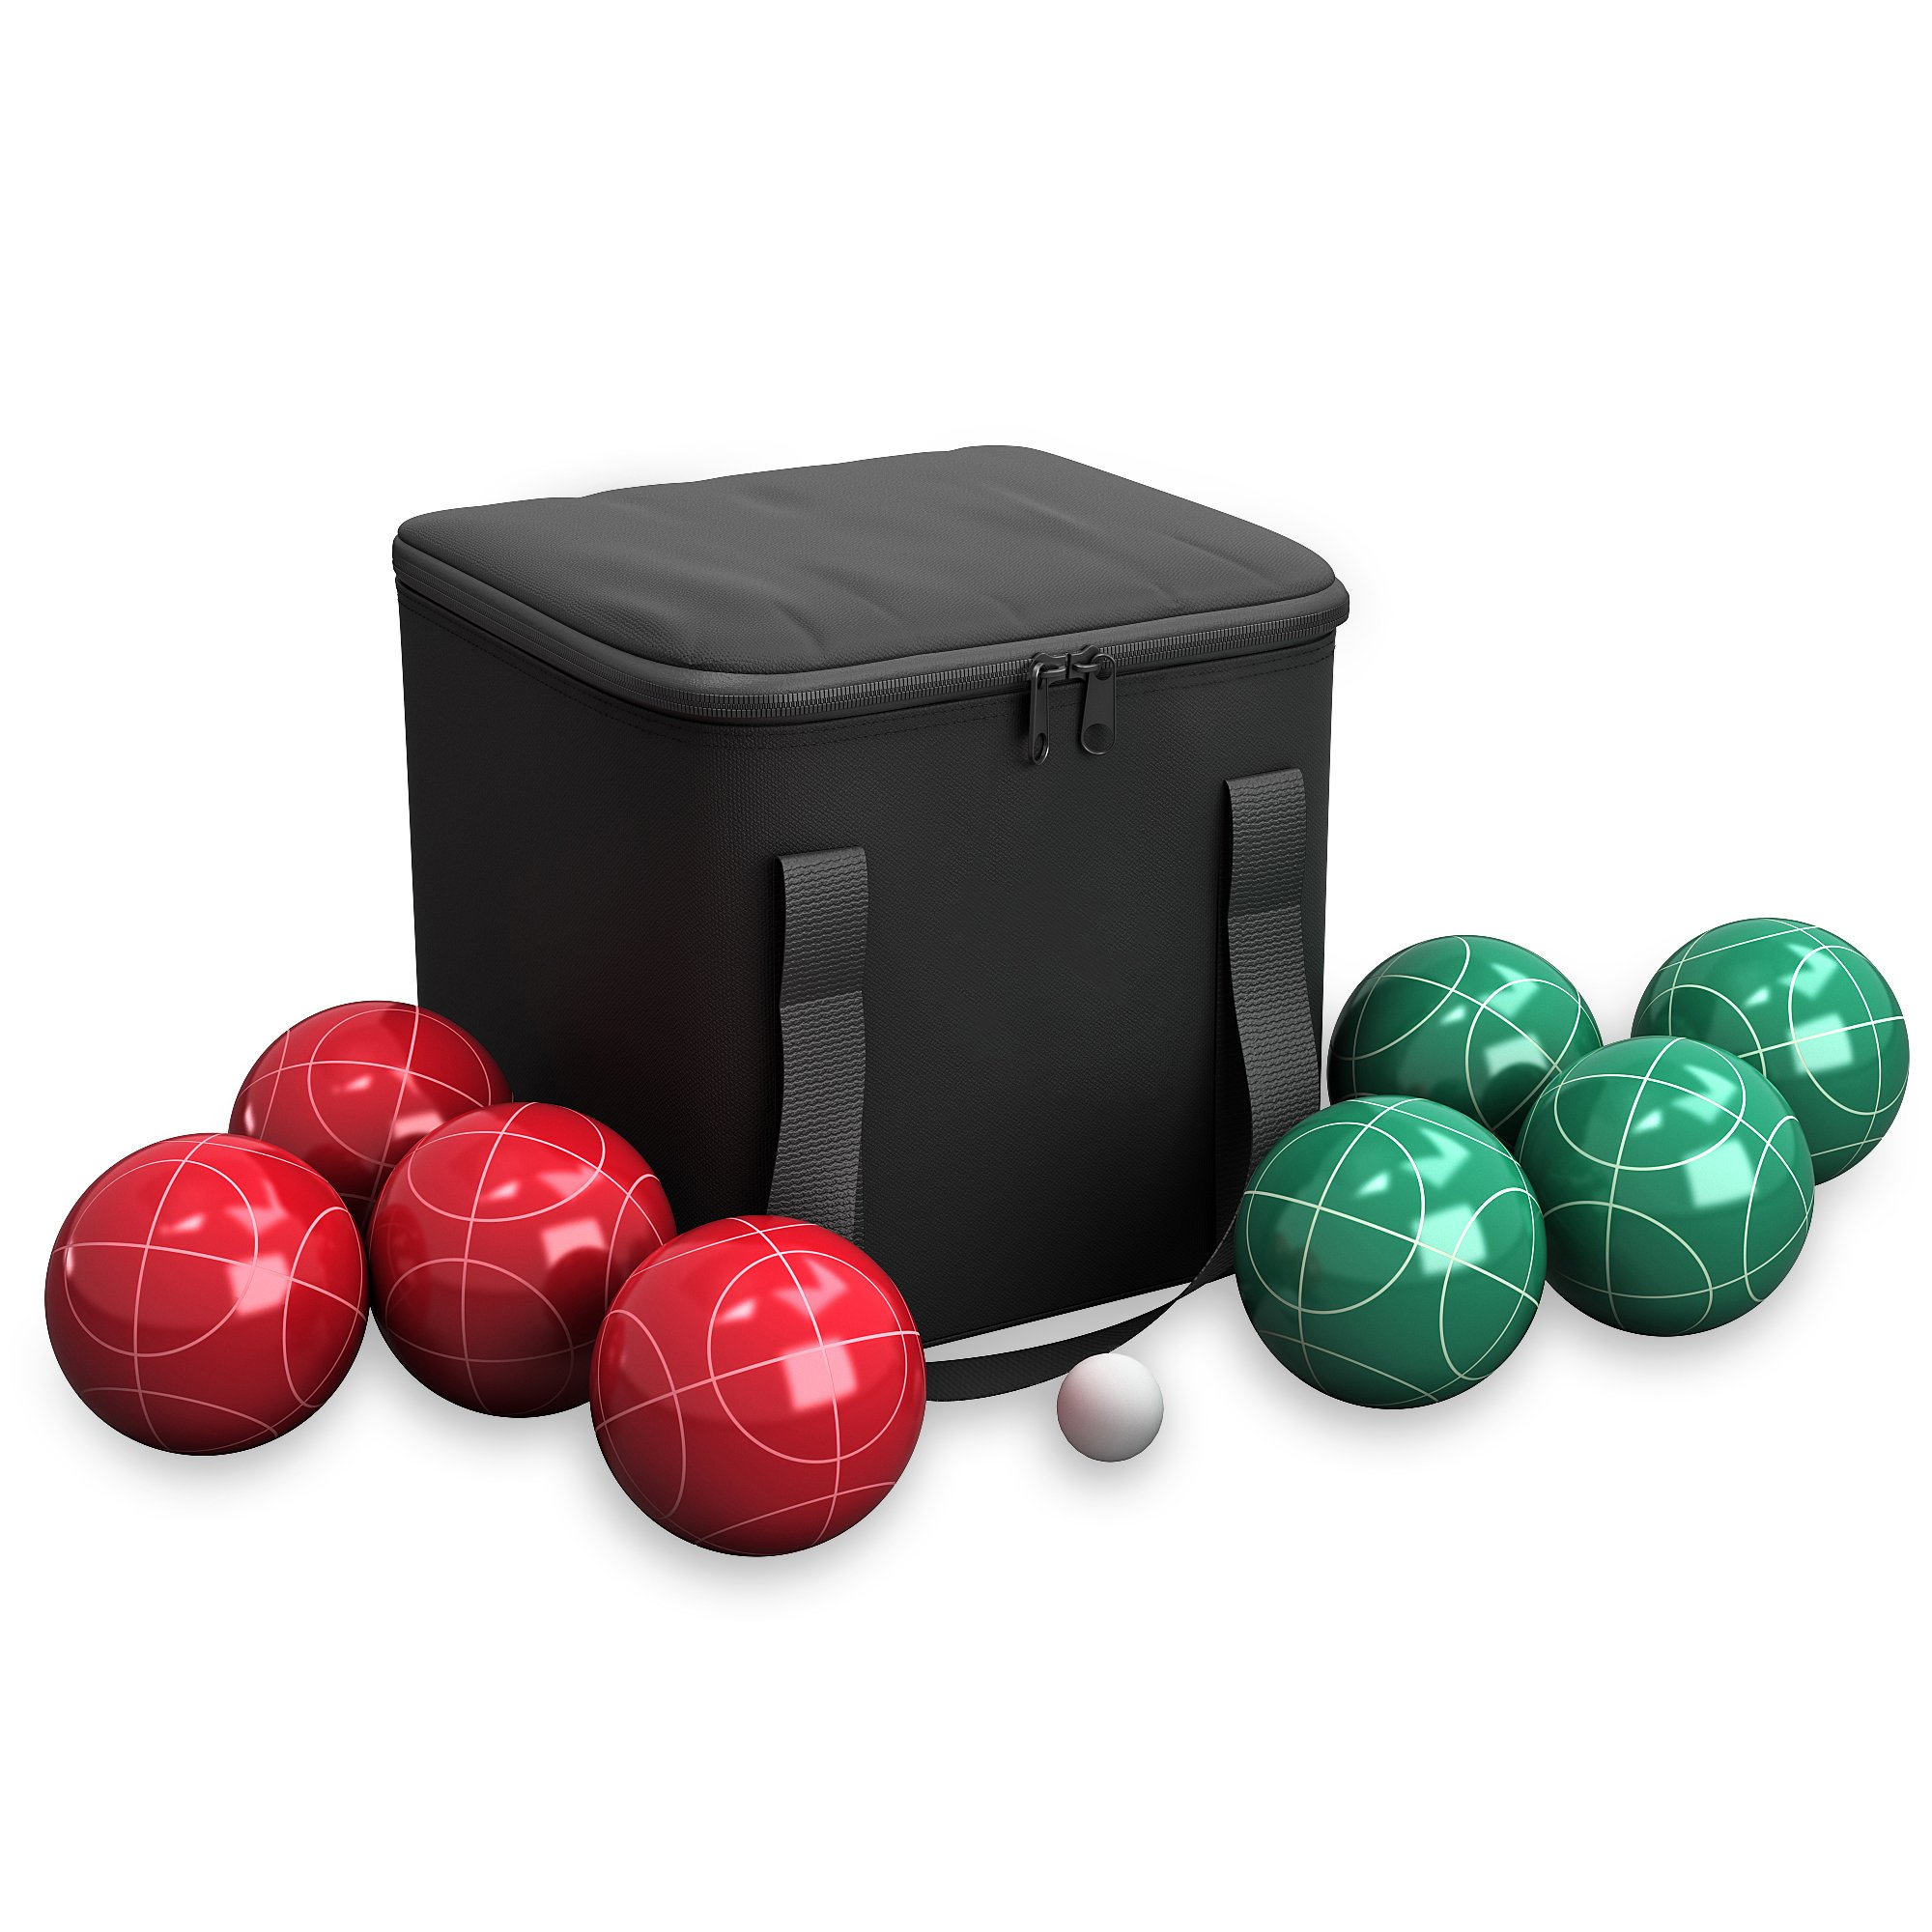 Bocce Ball Set- Outdoor Family Bocce Game for Backyard, Lawn, Beach & More- 4 Red & 4 Green Balls, Pallino & Carrying Case by Hey! Play!